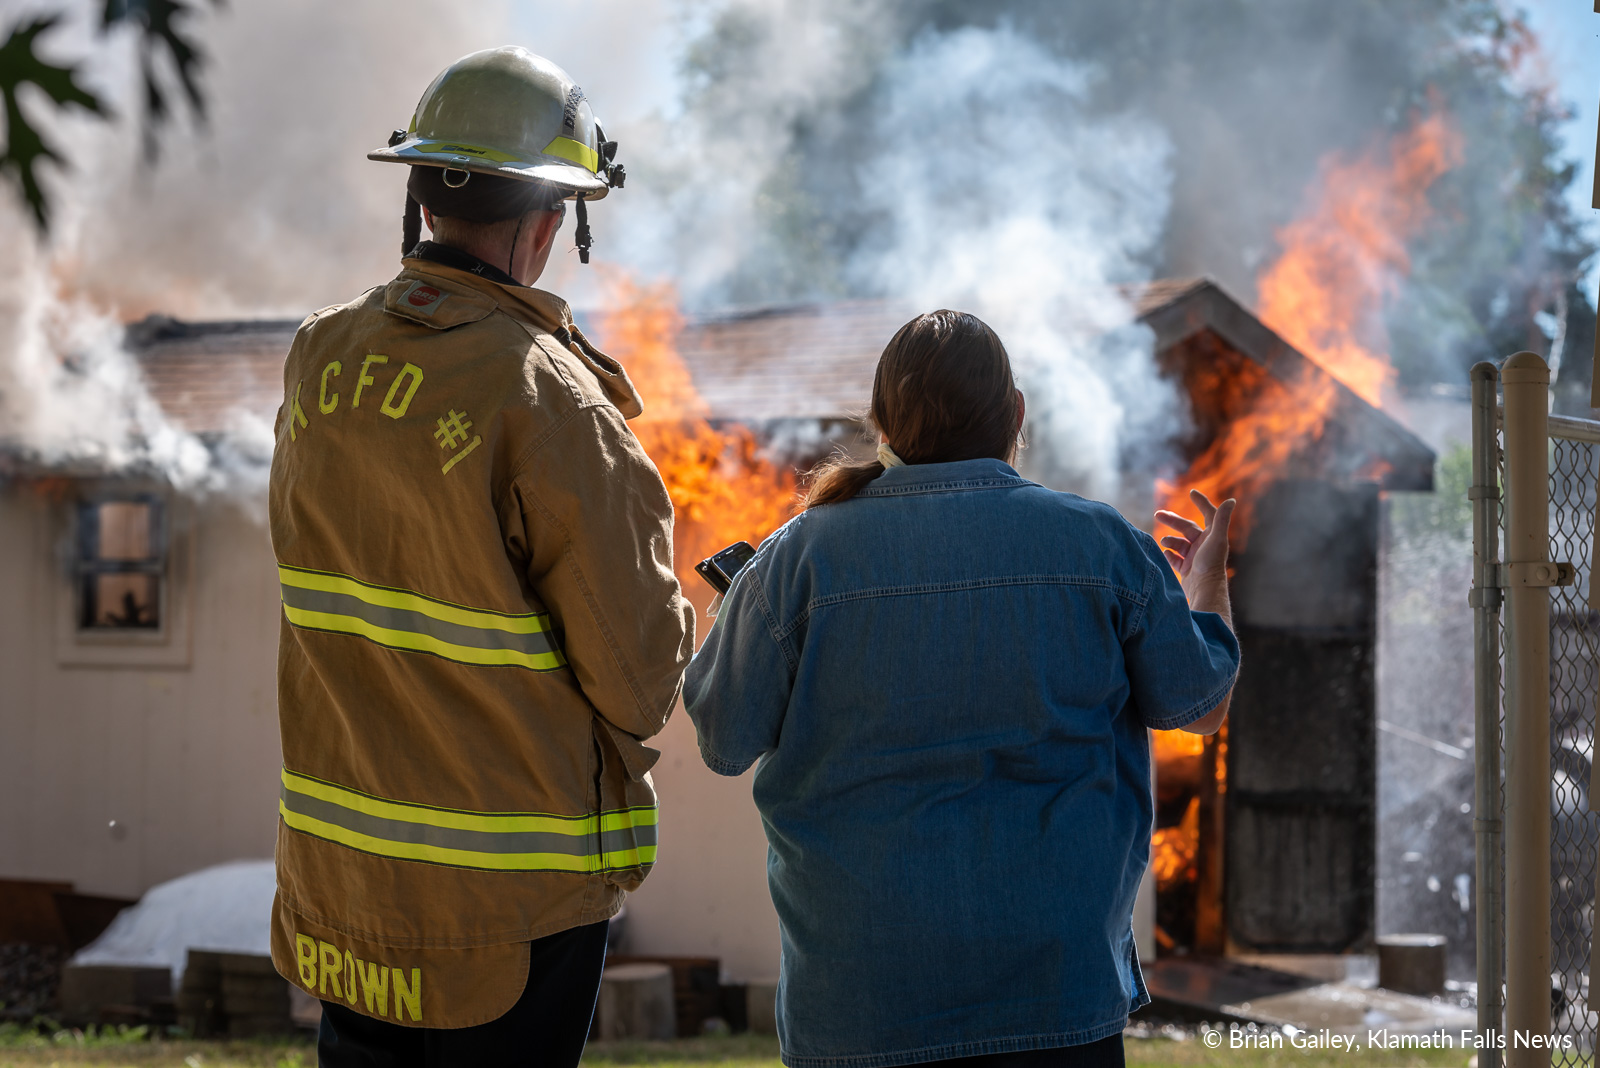 Homeowner sets her sights on the flames of the fire on Thompson Ave. for the first time. June 27, 2019 (Image, Brian Gailey / Klamath Falls News)